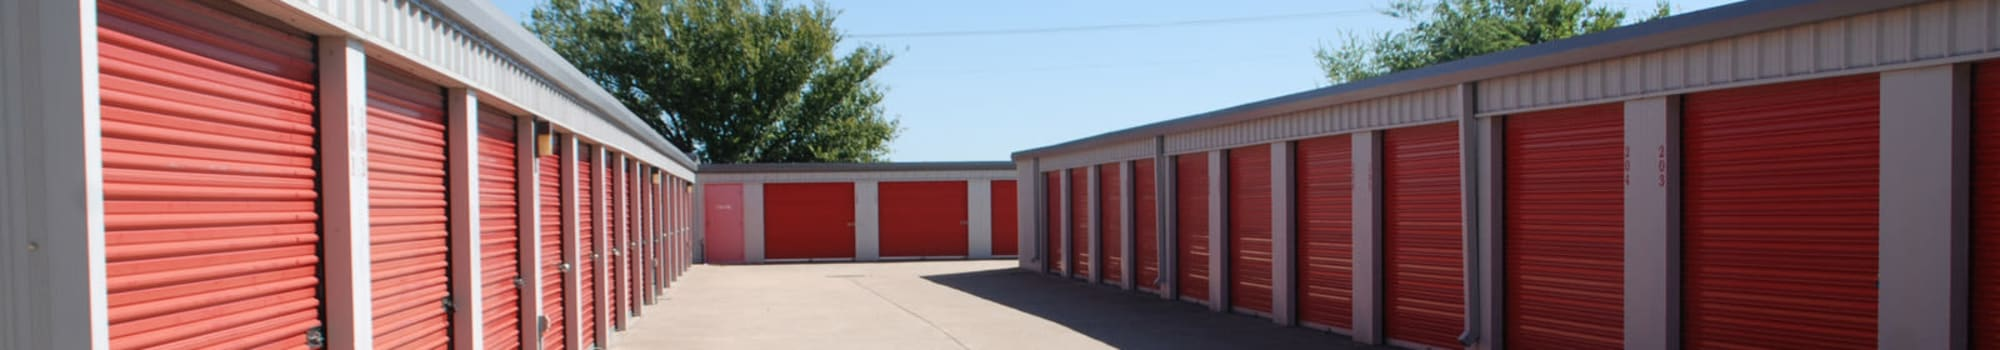 Aarons Self Storage 1 storage units for rent in Waco, Texas